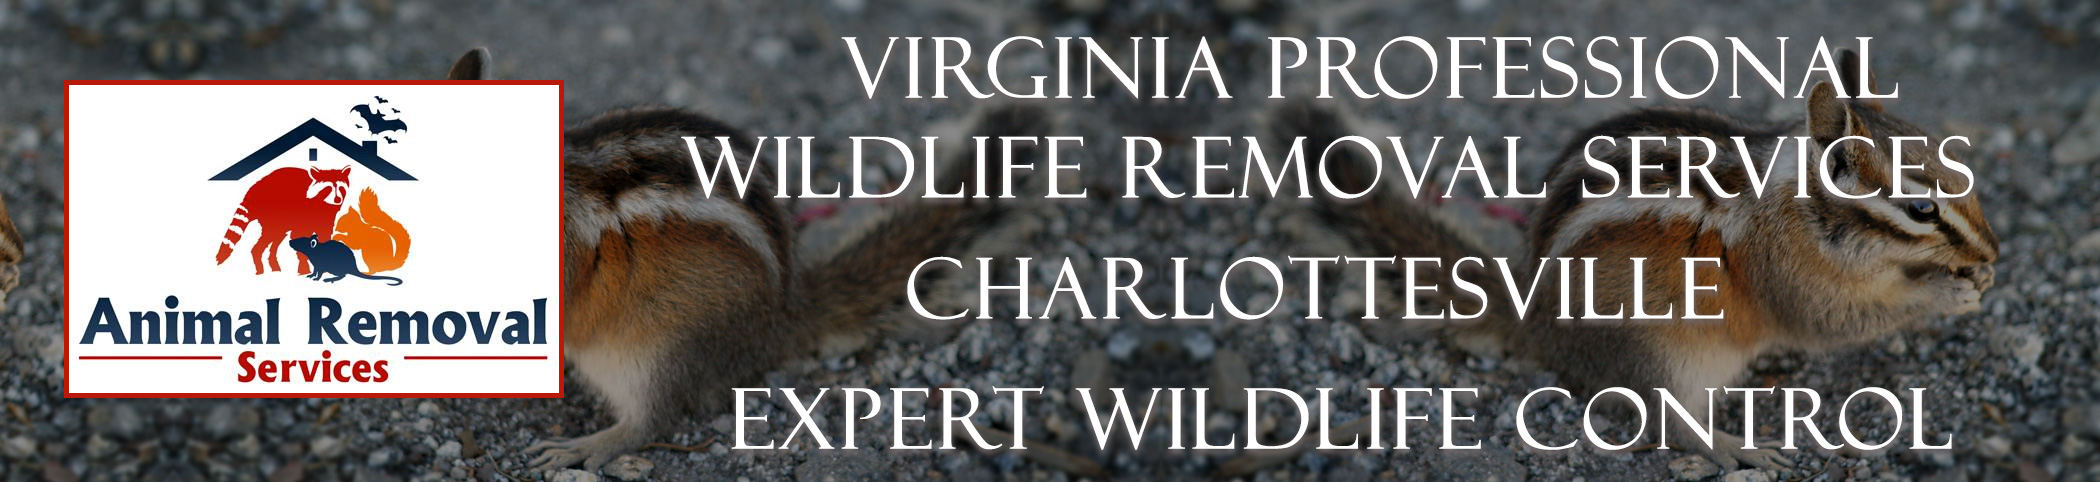 Virginia-Professional-Wildlife-Removal-Services-Charlottesville